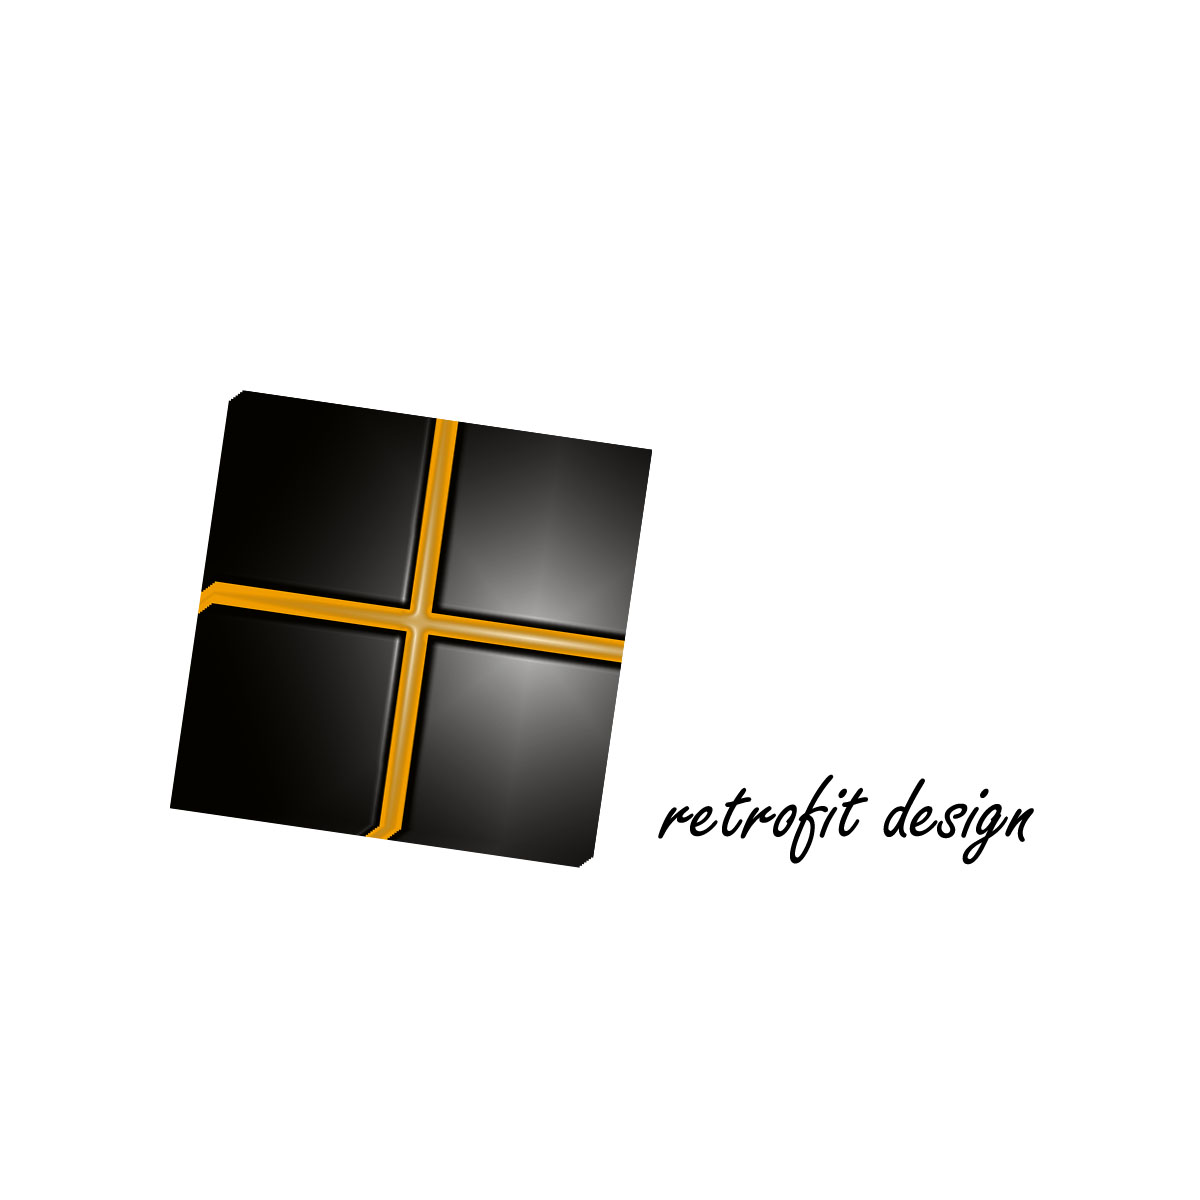 Logo Design by Moag - Entry No. 201 in the Logo Design Contest Inspiring Logo Design for retrofit design.